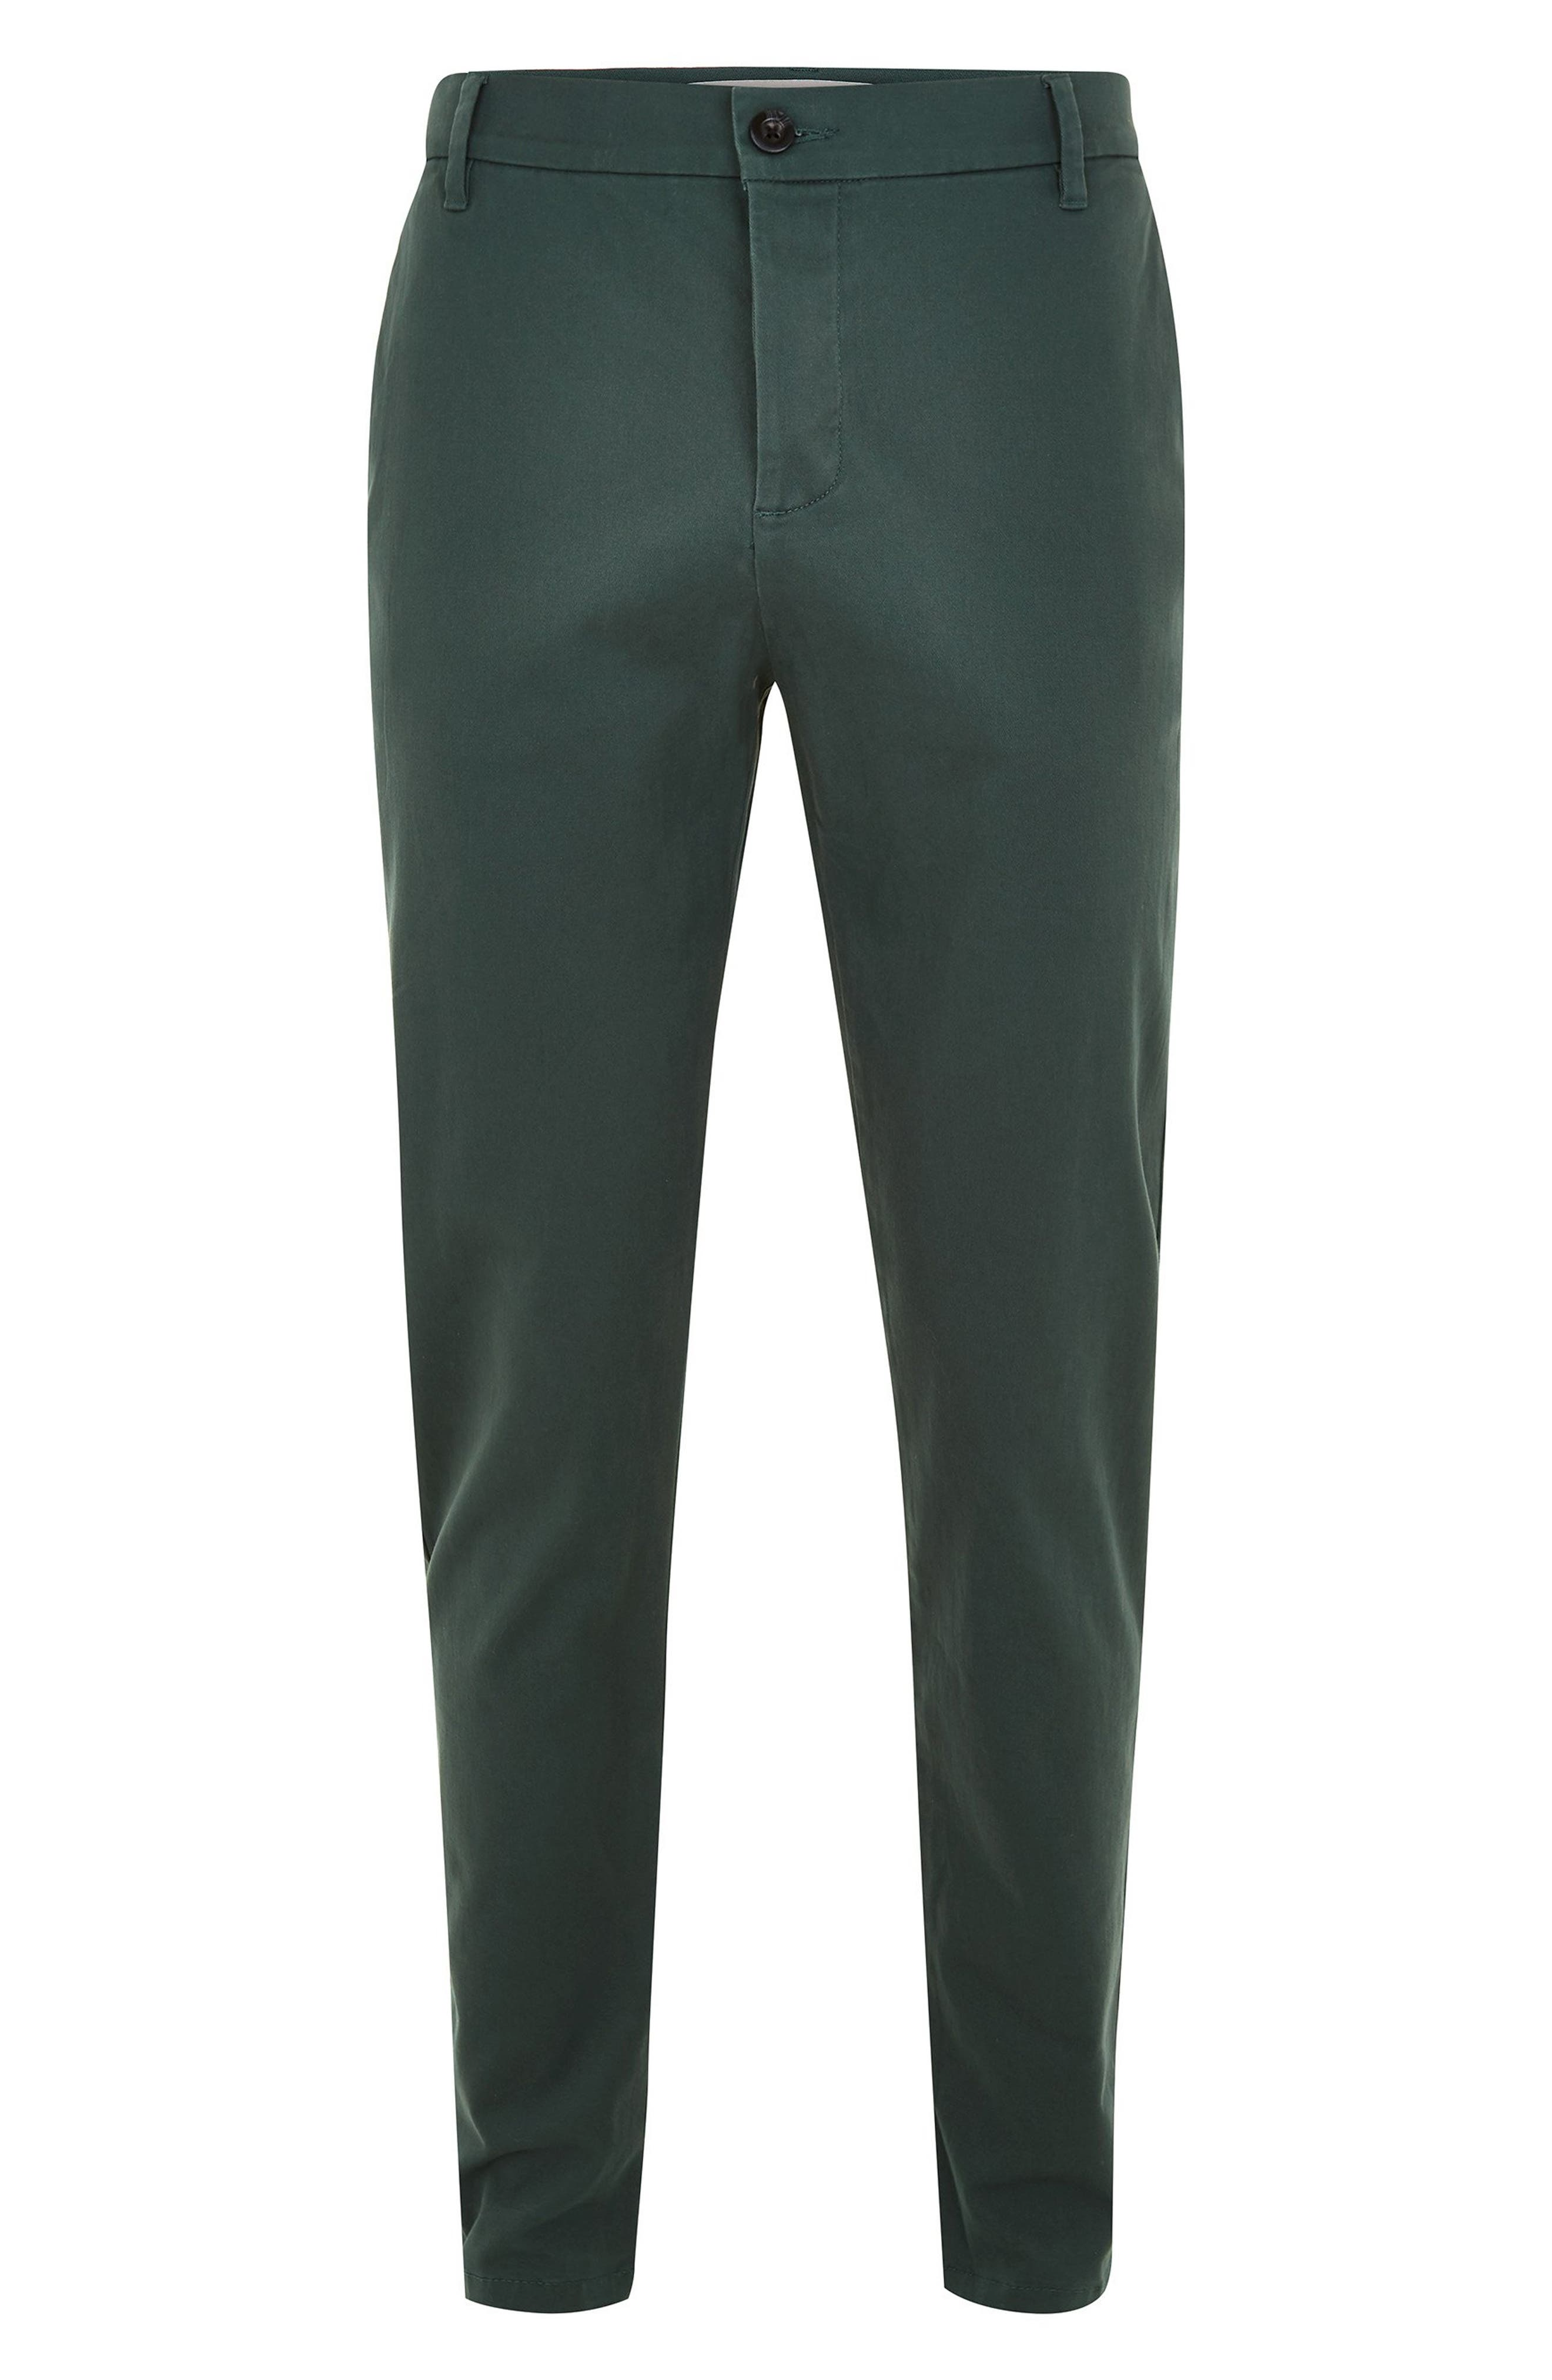 TOPMAN, Stretch Skinny Fit Chinos, Alternate thumbnail 3, color, GREEN